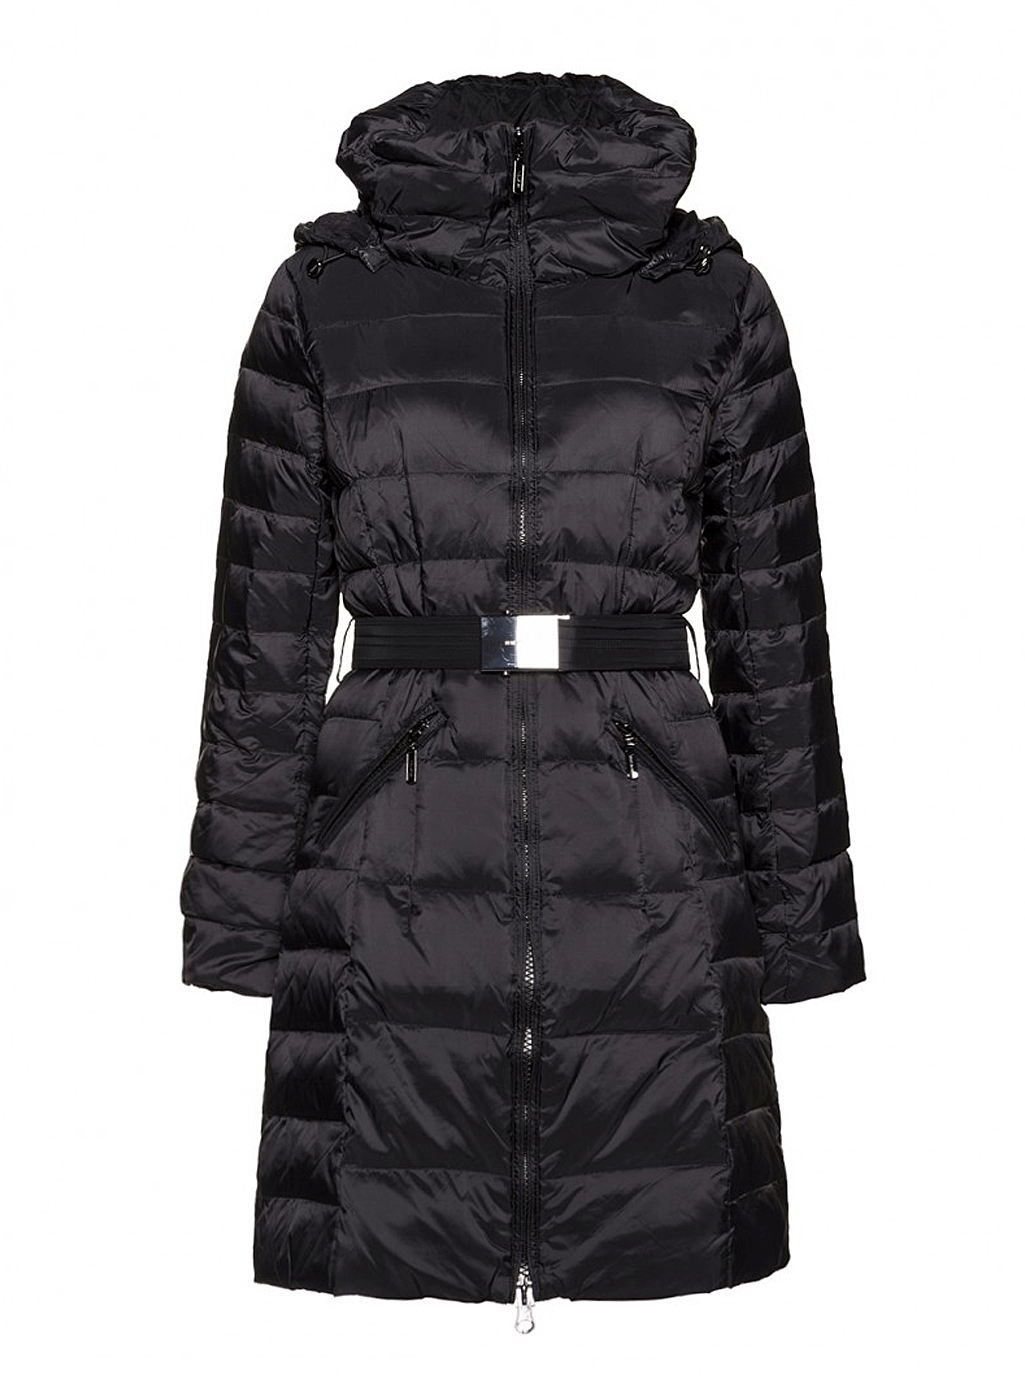 Benetton Classic Belted Puffer Coat in Black Long down